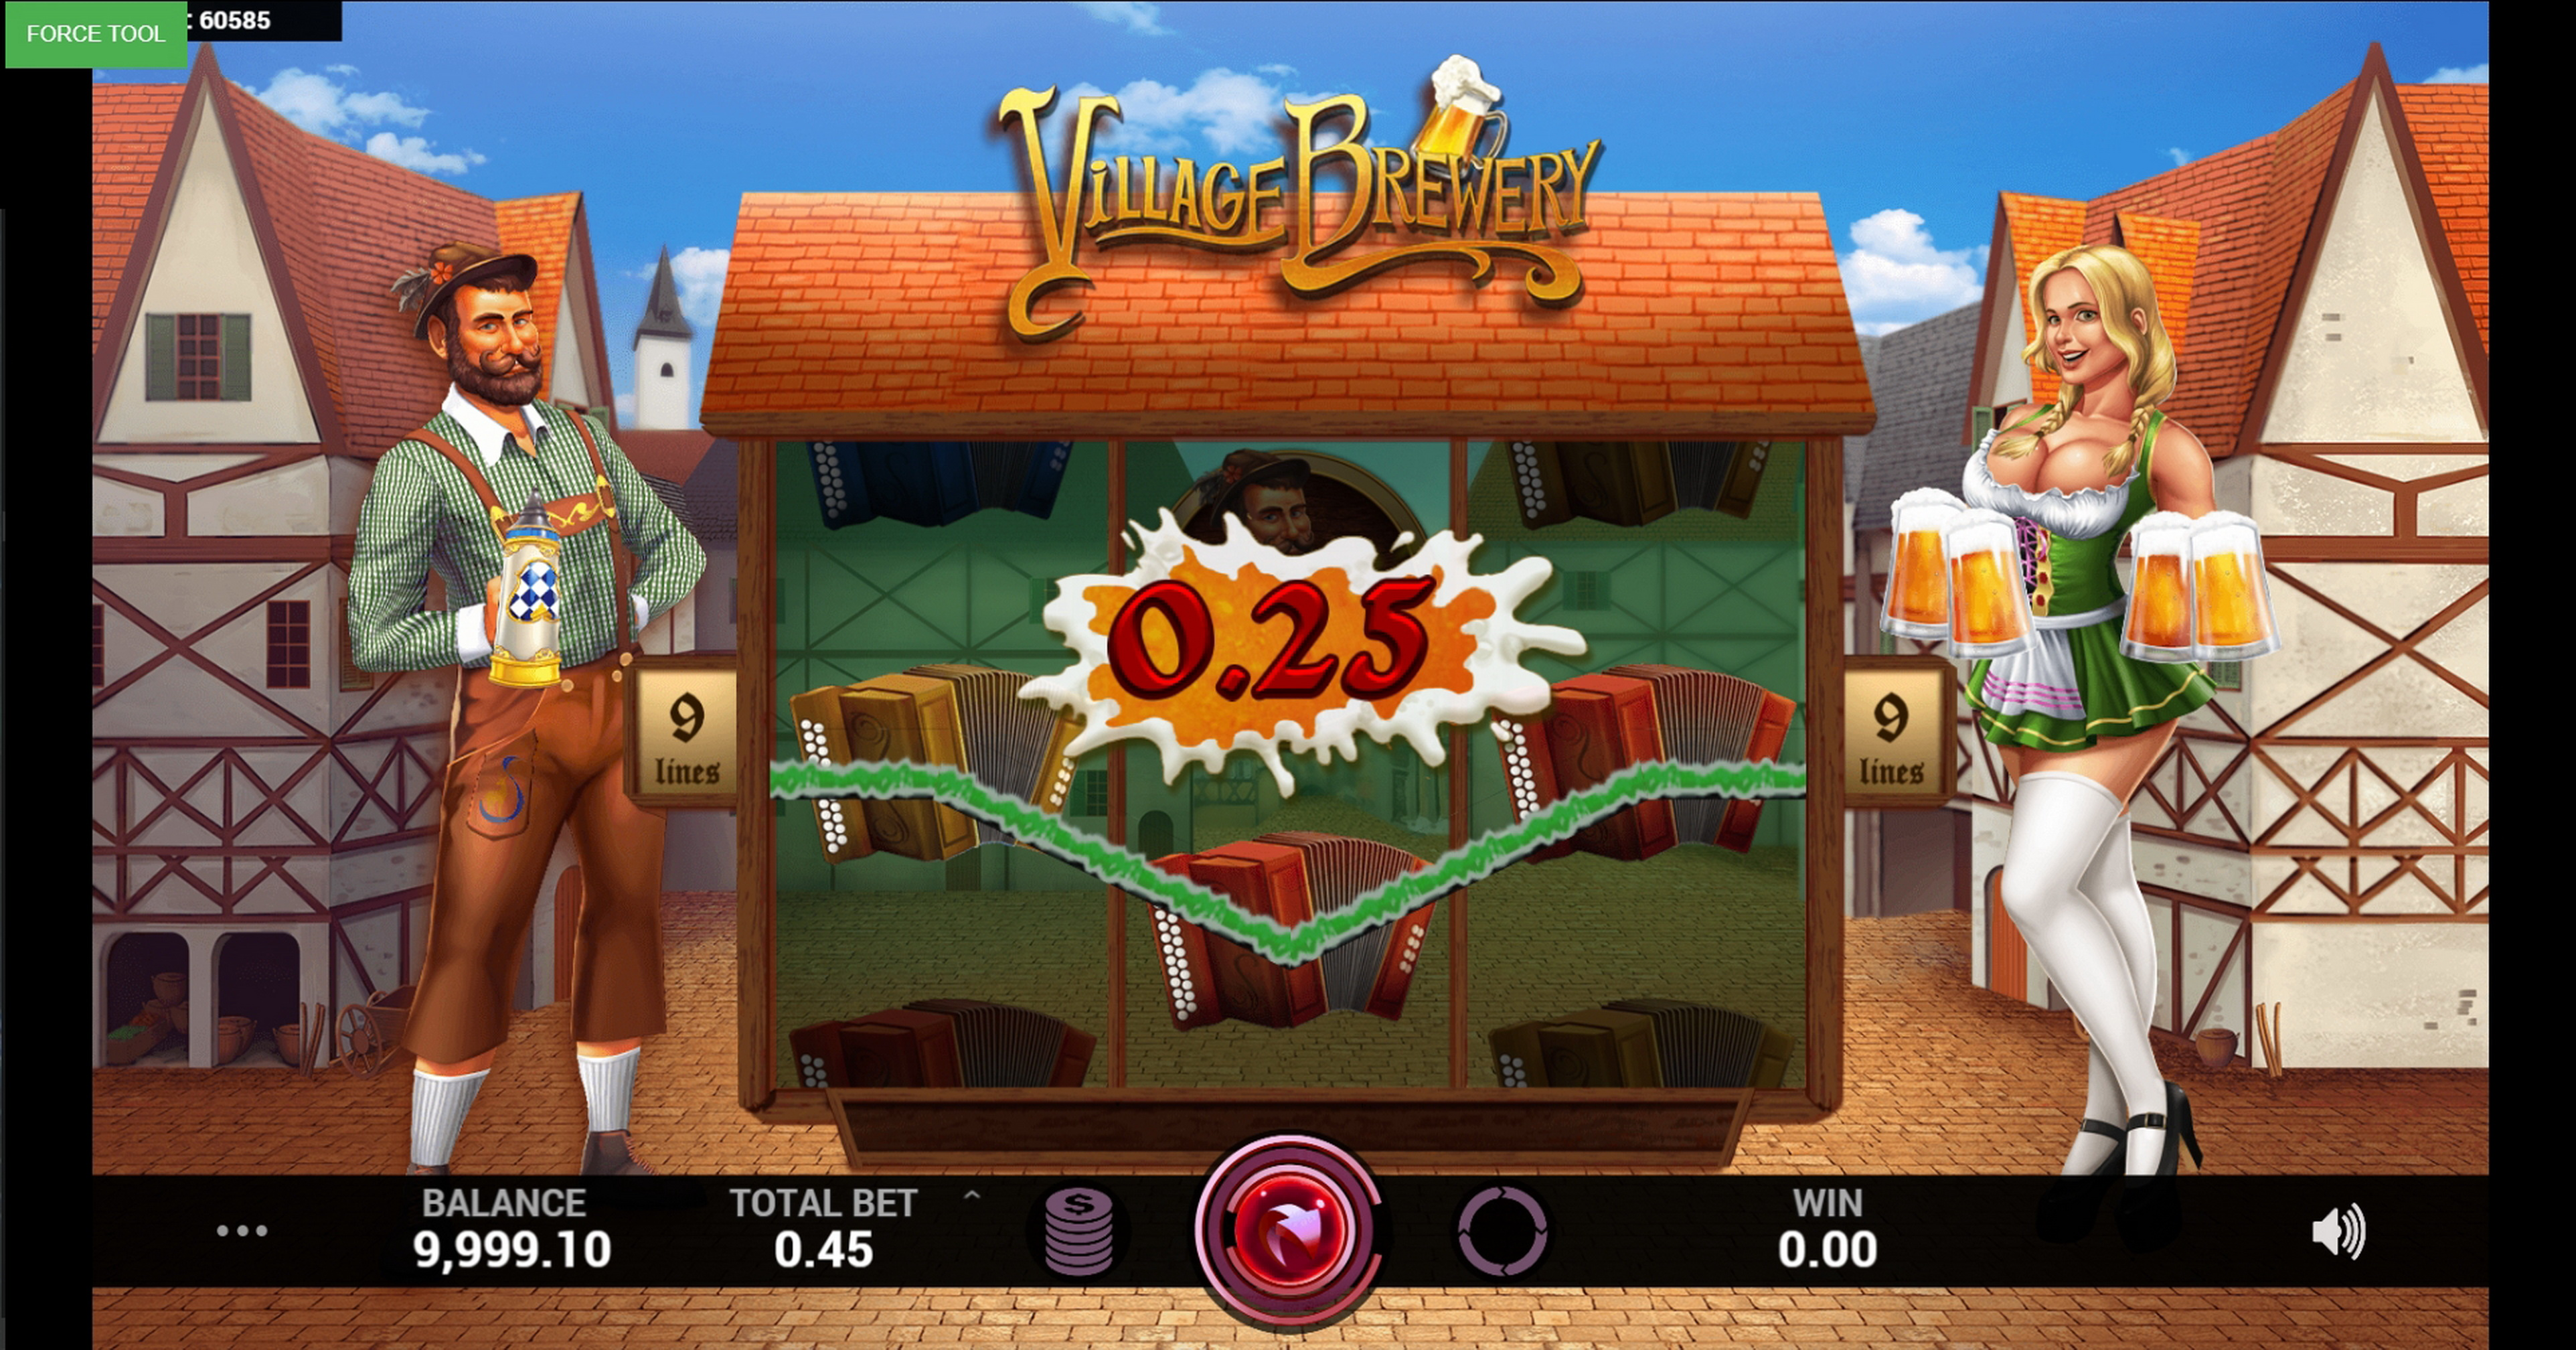 Win Money in Village Brewery Free Slot Game by Caleta Gaming